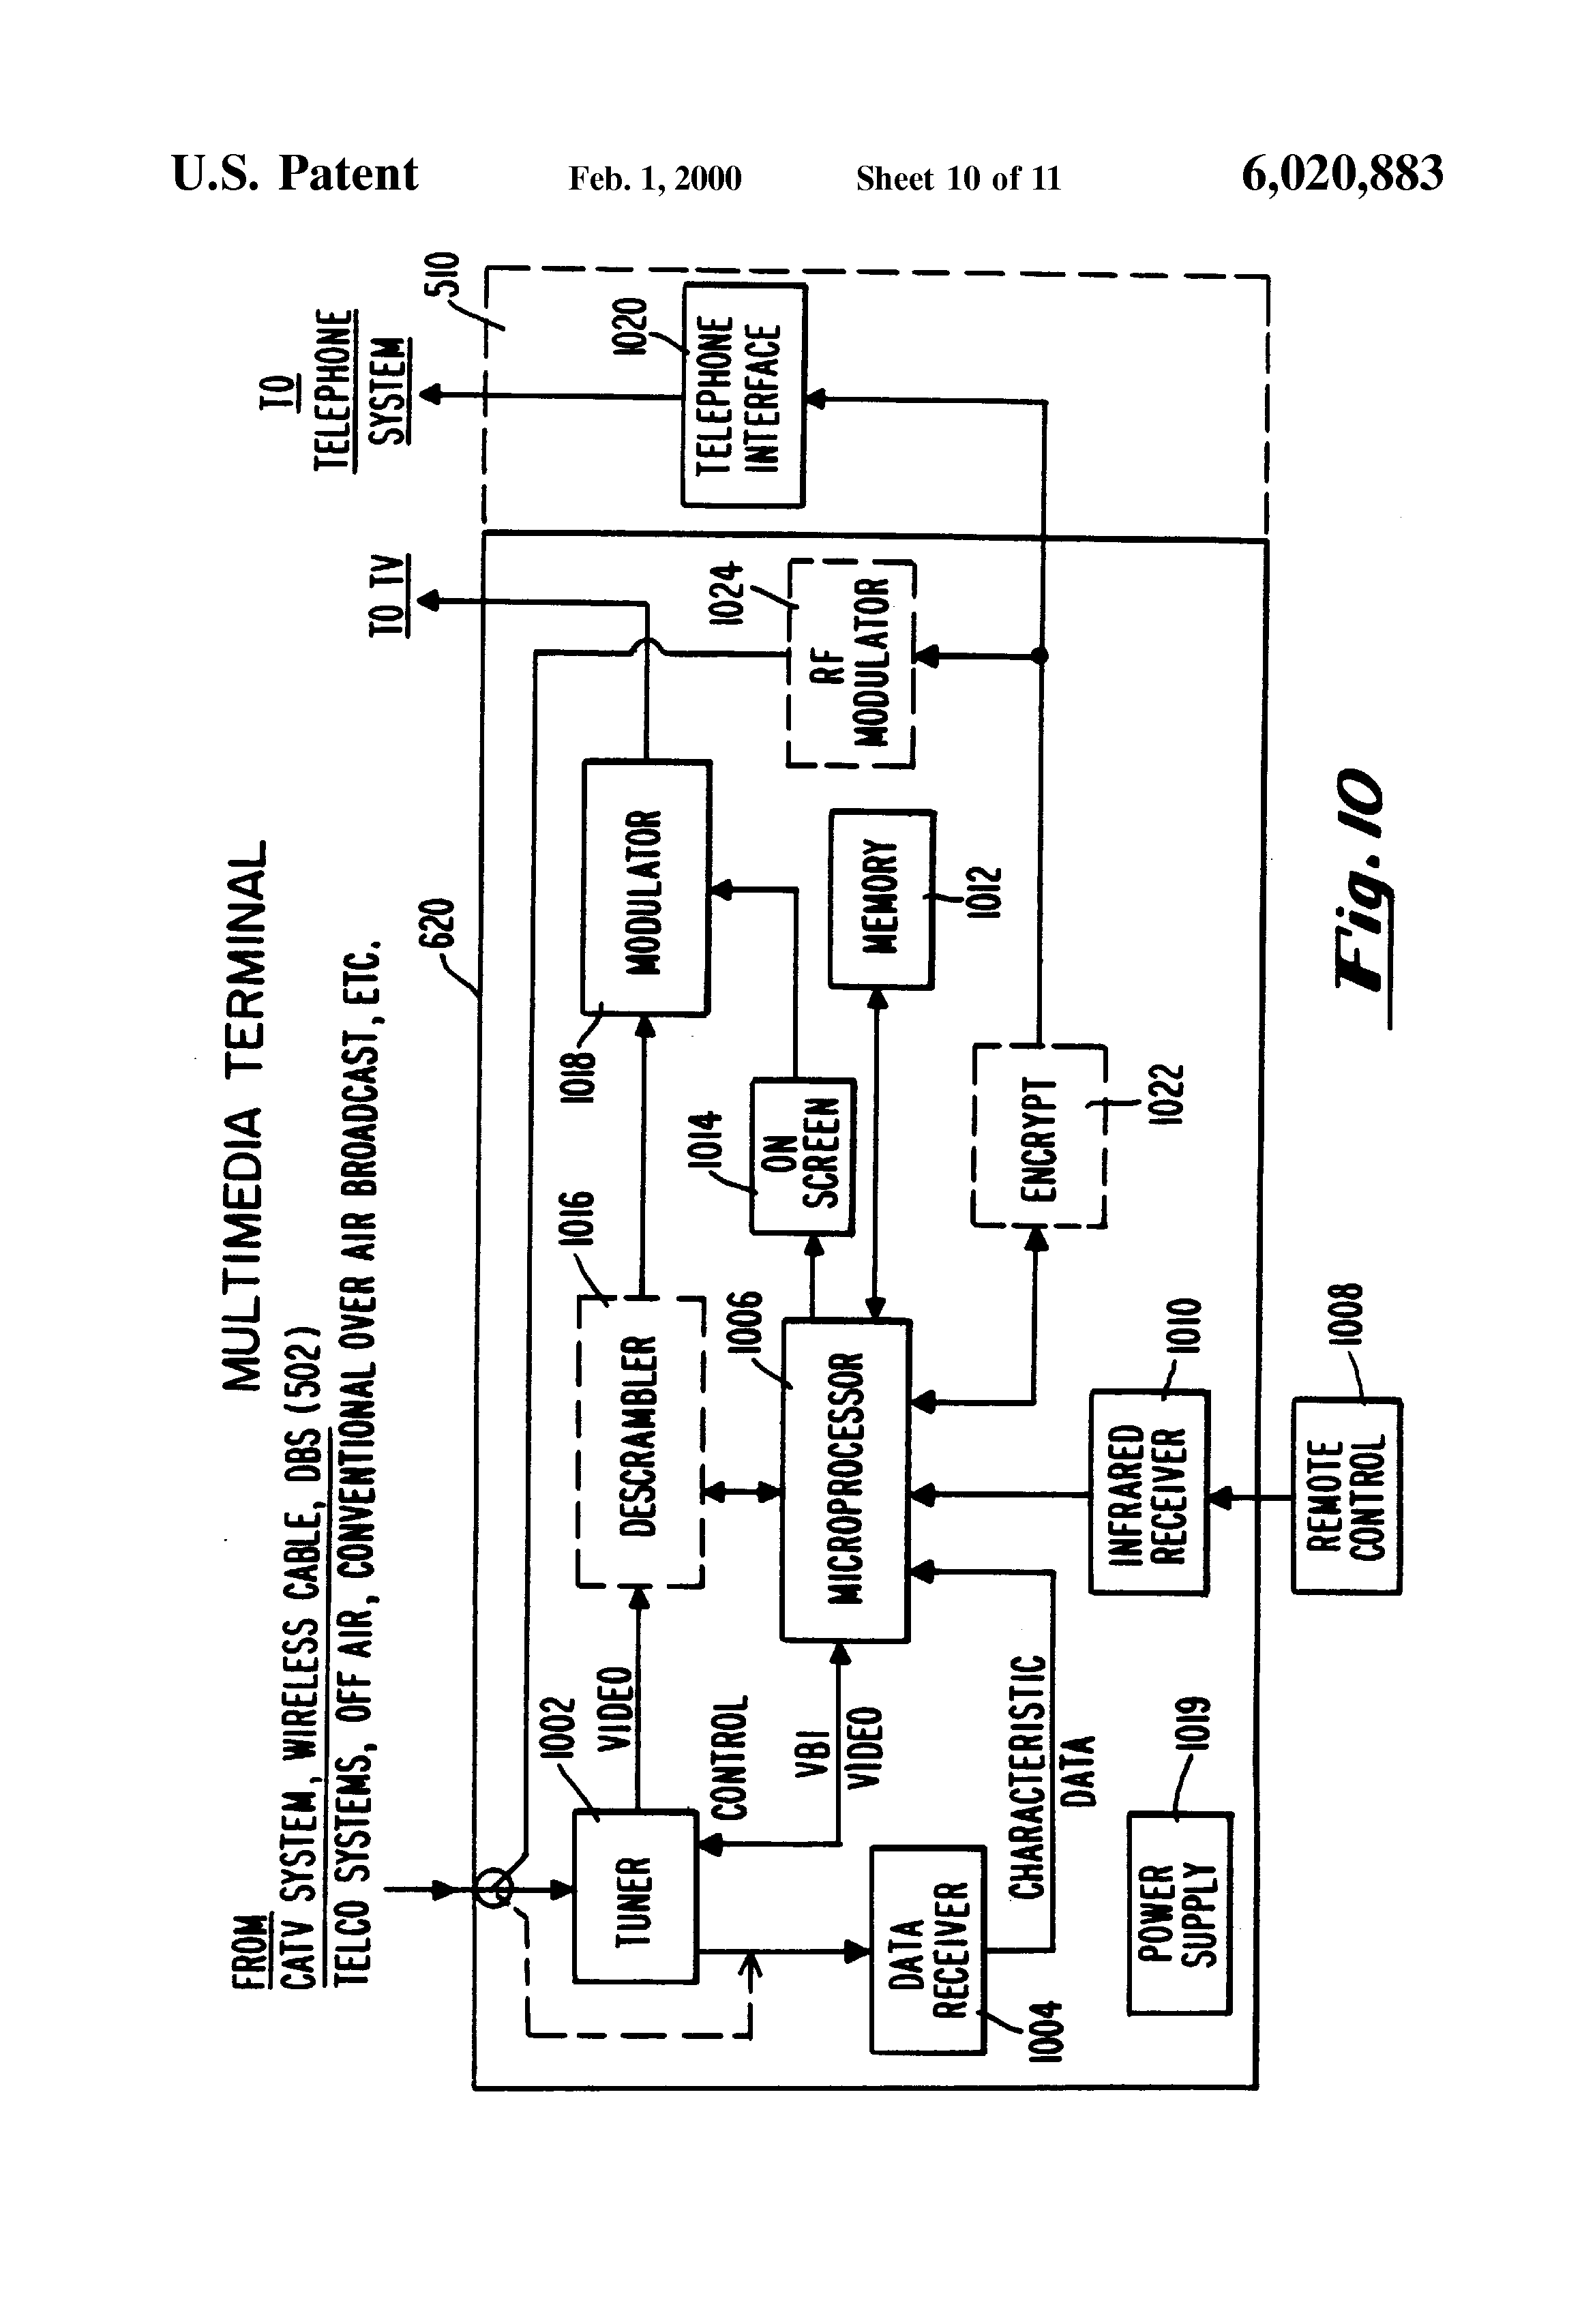 US6020883A - System and method for scheduling broadcast of and ... on telephone nid box, telephone interface box, telephone network diagram, telephone cable wiring, telephone line diagram, telephone plug wiring, telephone wiring basics, intercom circuit diagram, telephone wiring schematic, telephone cross box, telephone demarc, telephone jack wiring, phone line hook up diagram, telephone jack diagram, telephone service box, telephone wiring color code, telephone box cabinet, telephone demarcation box, phone system diagram, outside phone box diagram,